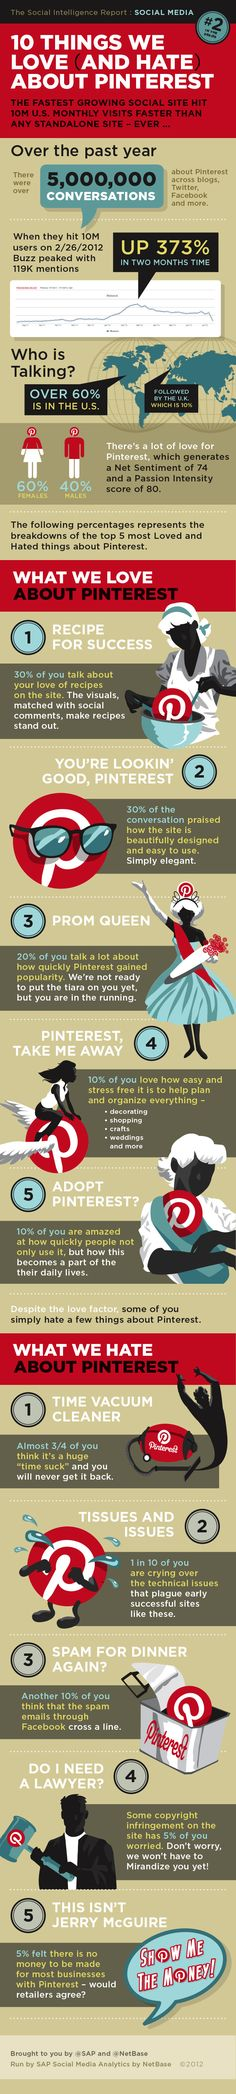 The Interest In Pinterest: The Ten Things We Love (and Hate). http://www.serverpoint.com/